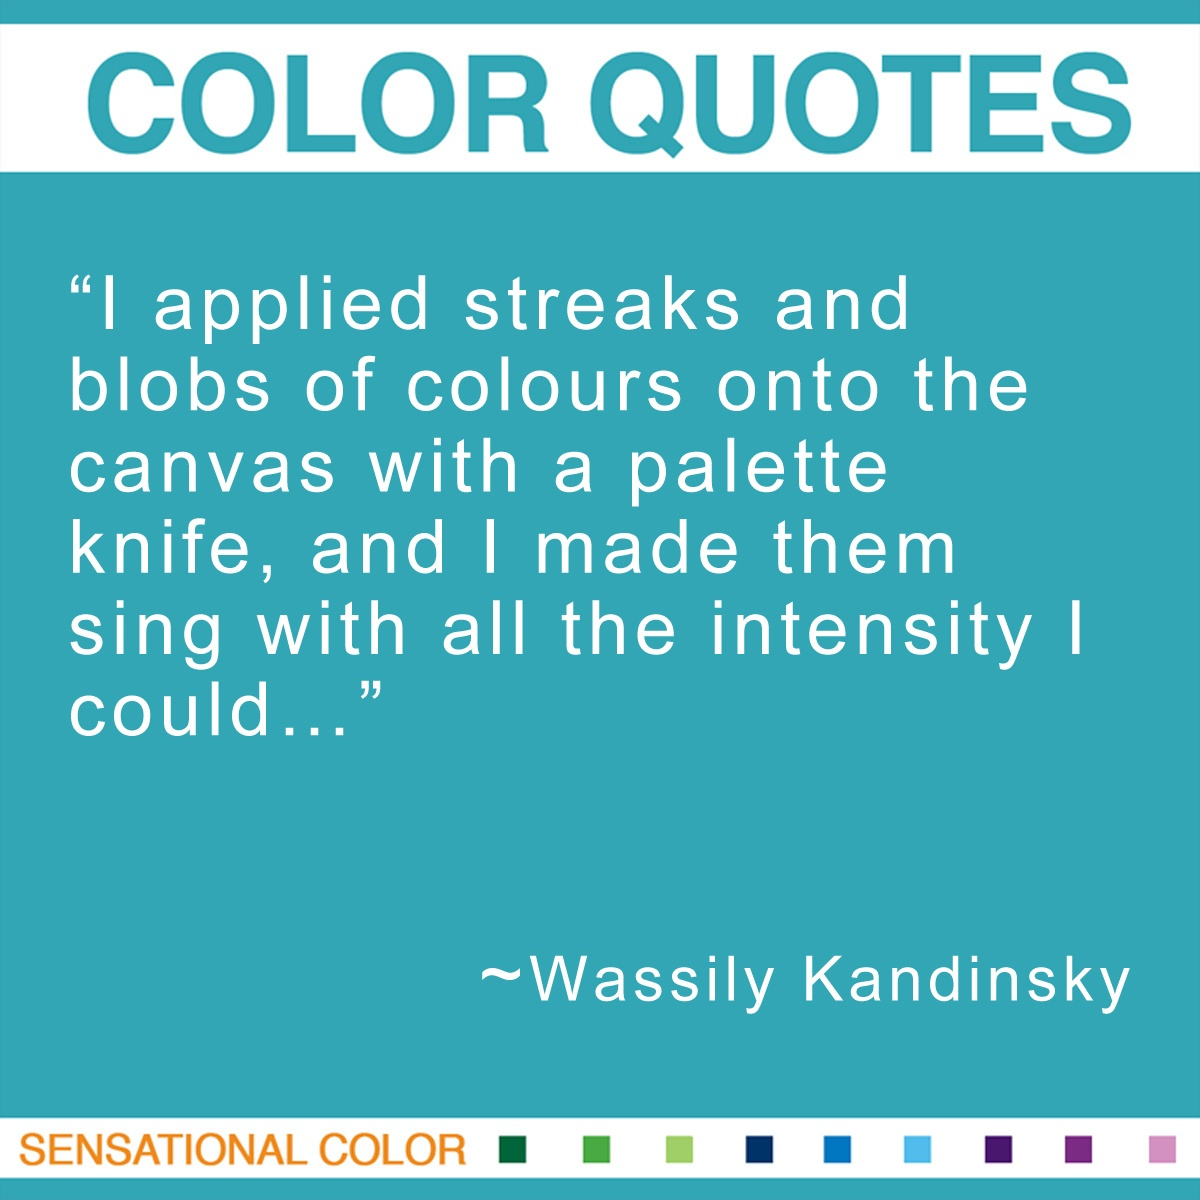 """I applied streaks and blobs of colours onto the canvas with a palette knife, and I made them sing with all the intensity I could…"" - Wassily Kandinsky"